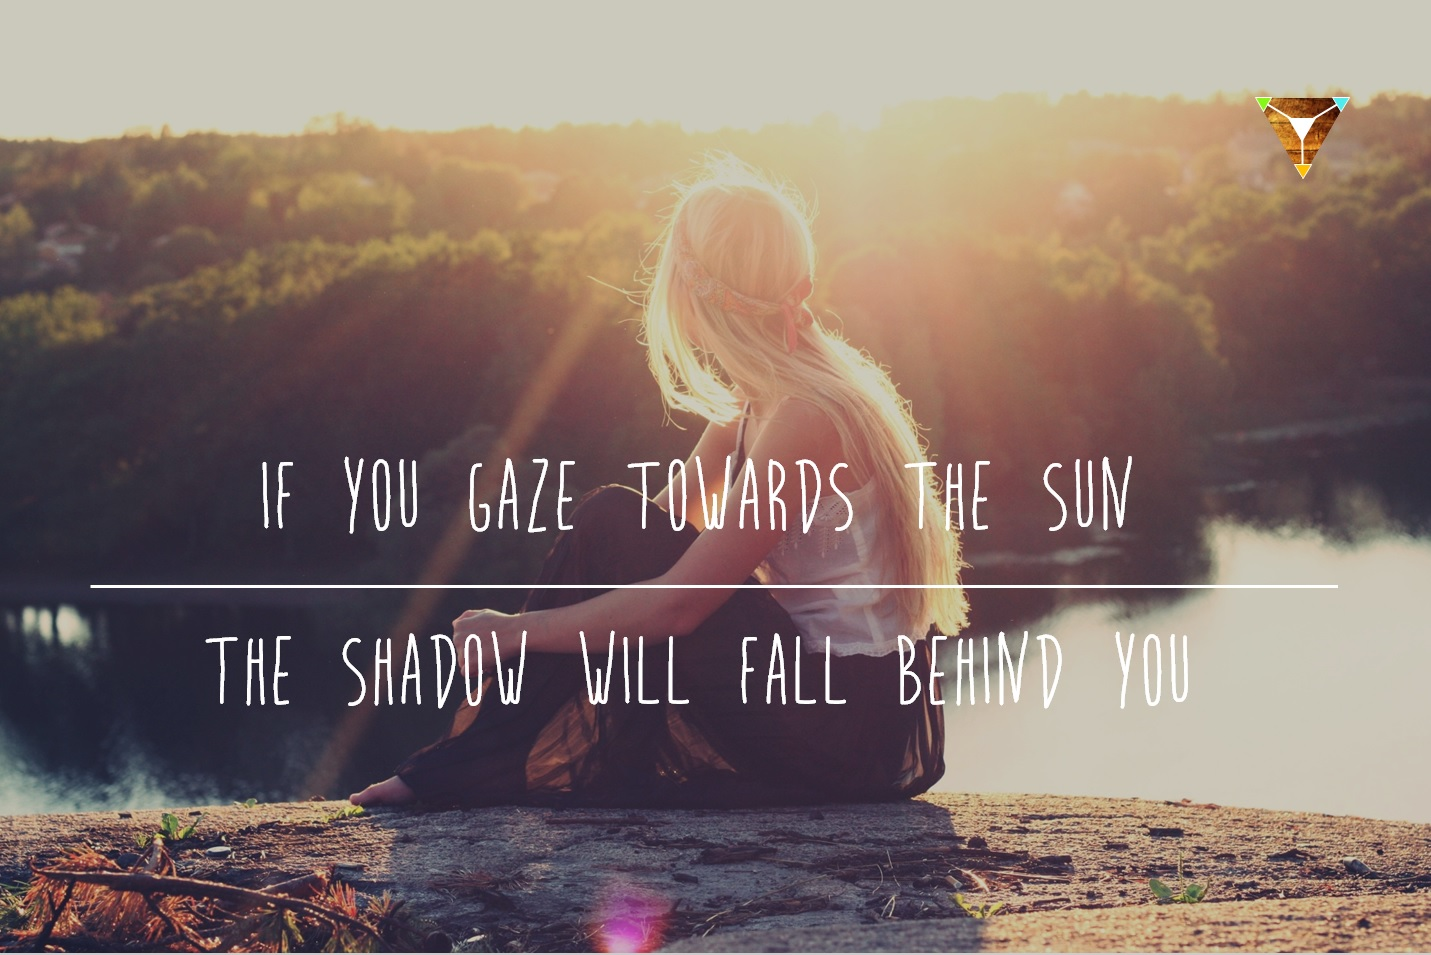 Quote If you gaze towards the sun the shadow will fall behind you